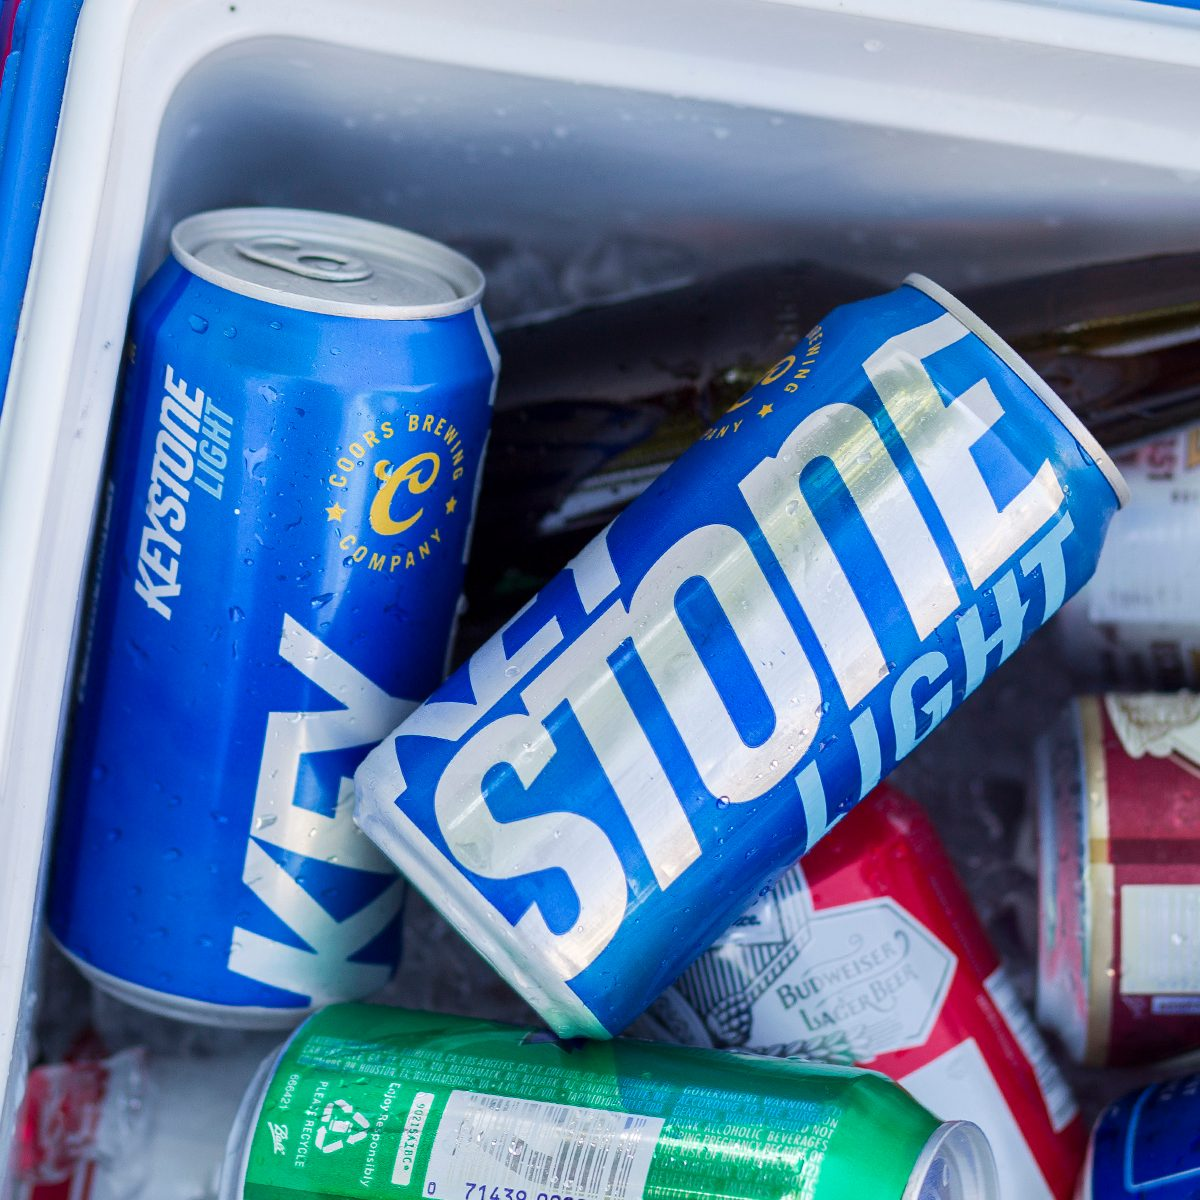 Keystone Light beer in a cooler